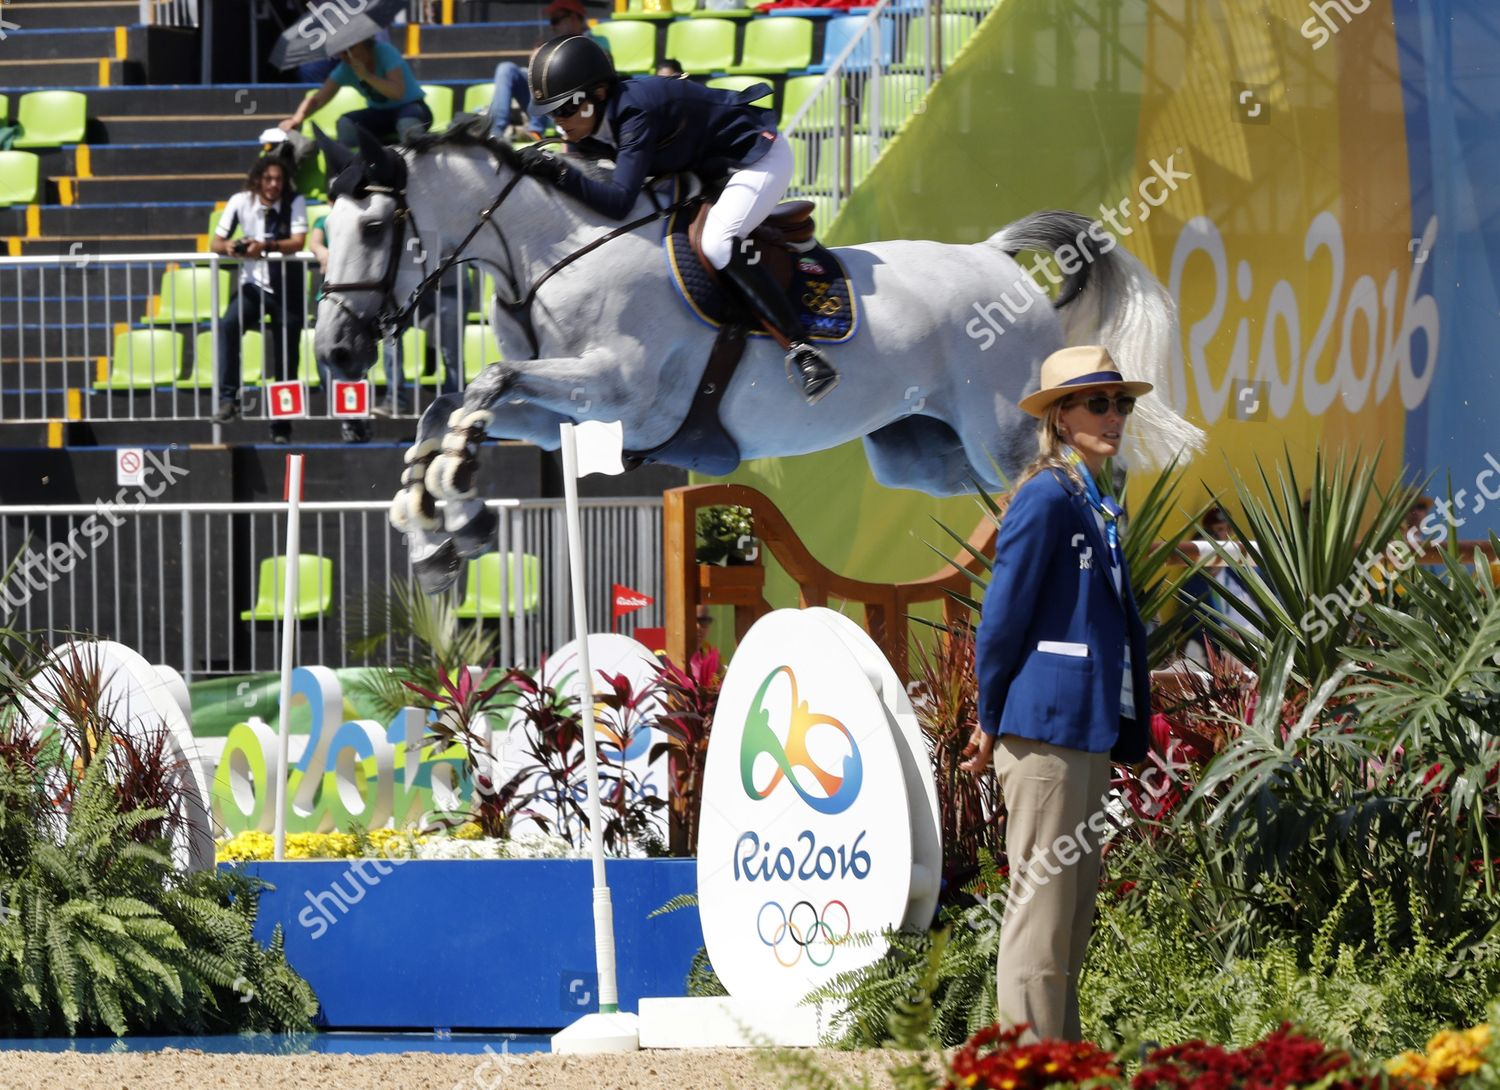 Stock photo of Brazil Rio 2016 Olympic Games - Aug 2016